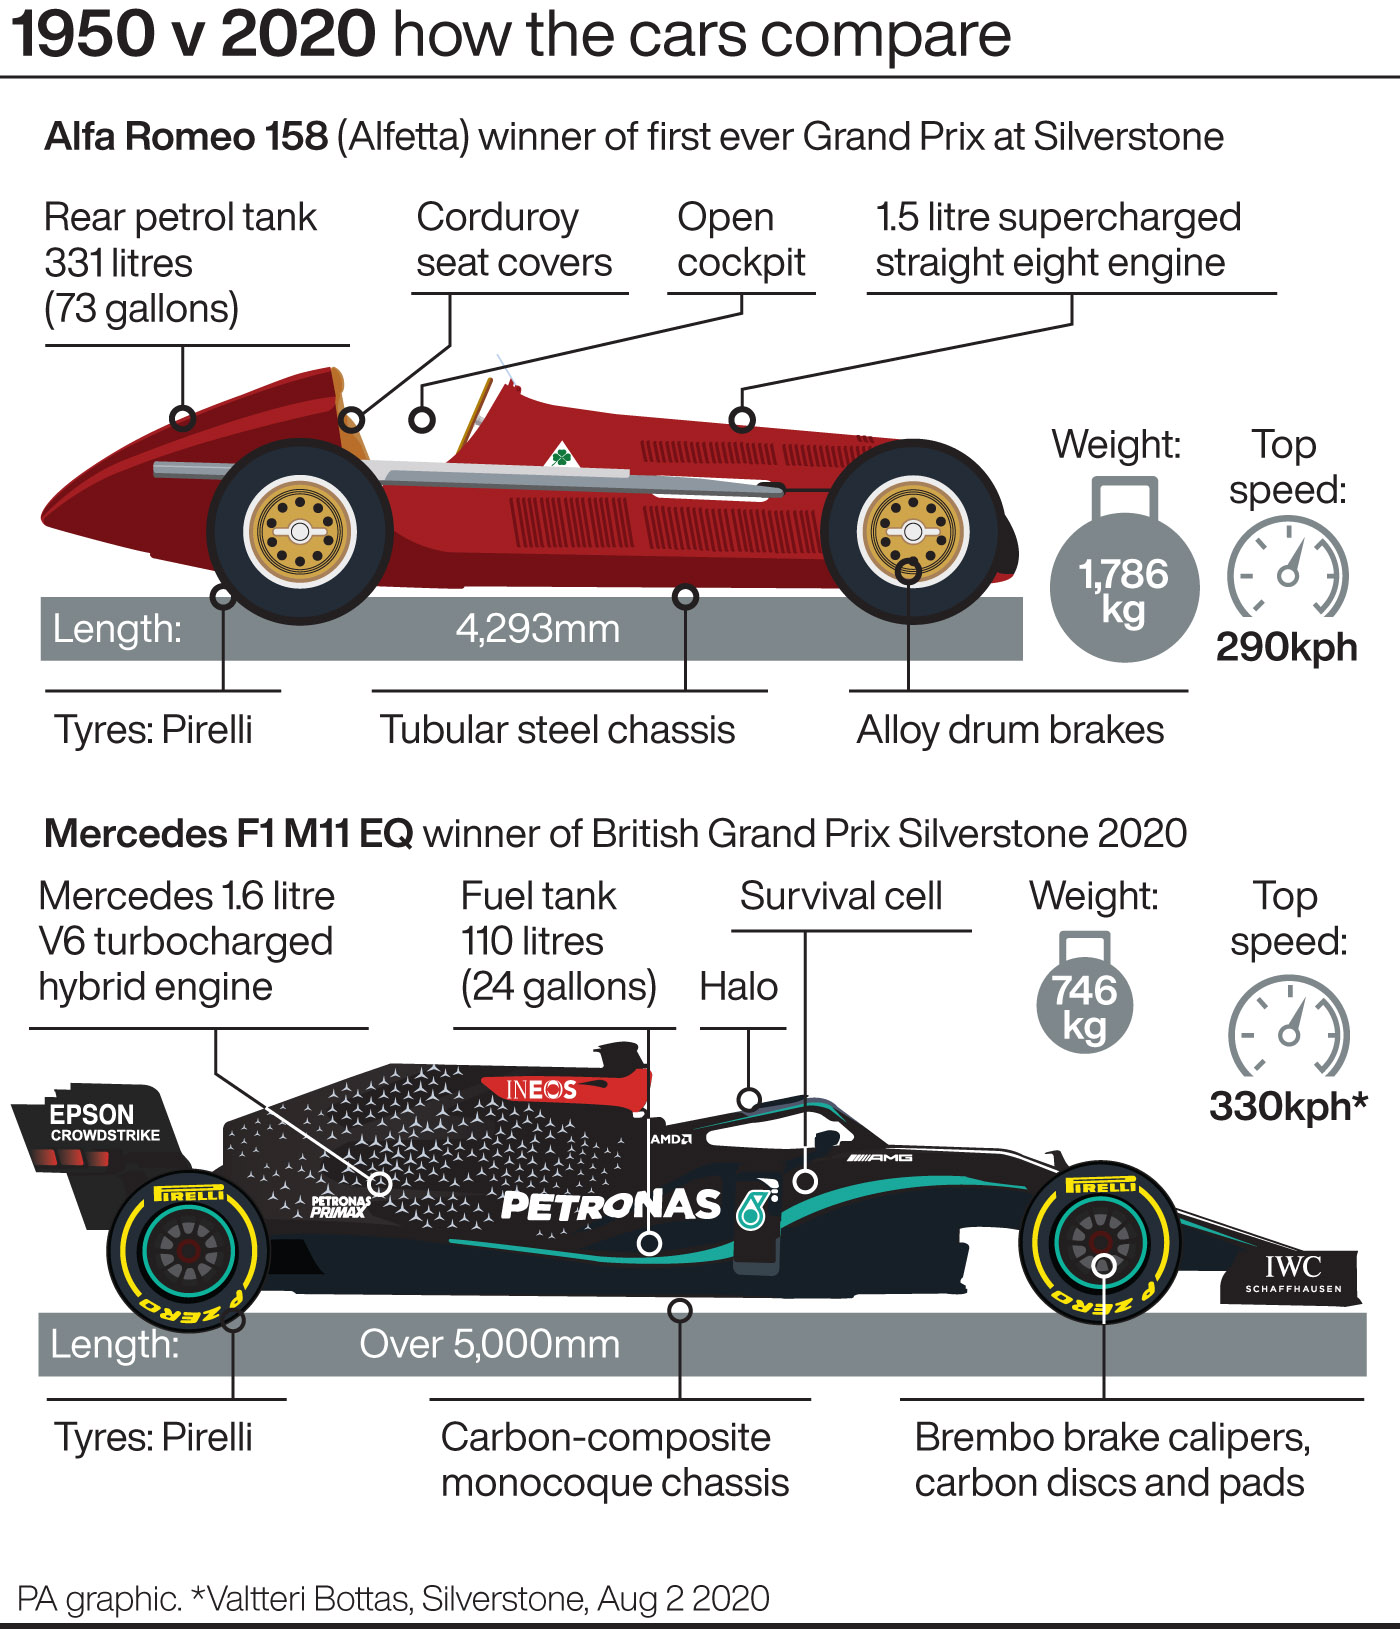 Comparing Lewis Hamilton's Mercedes Car To 1950 F1 Race